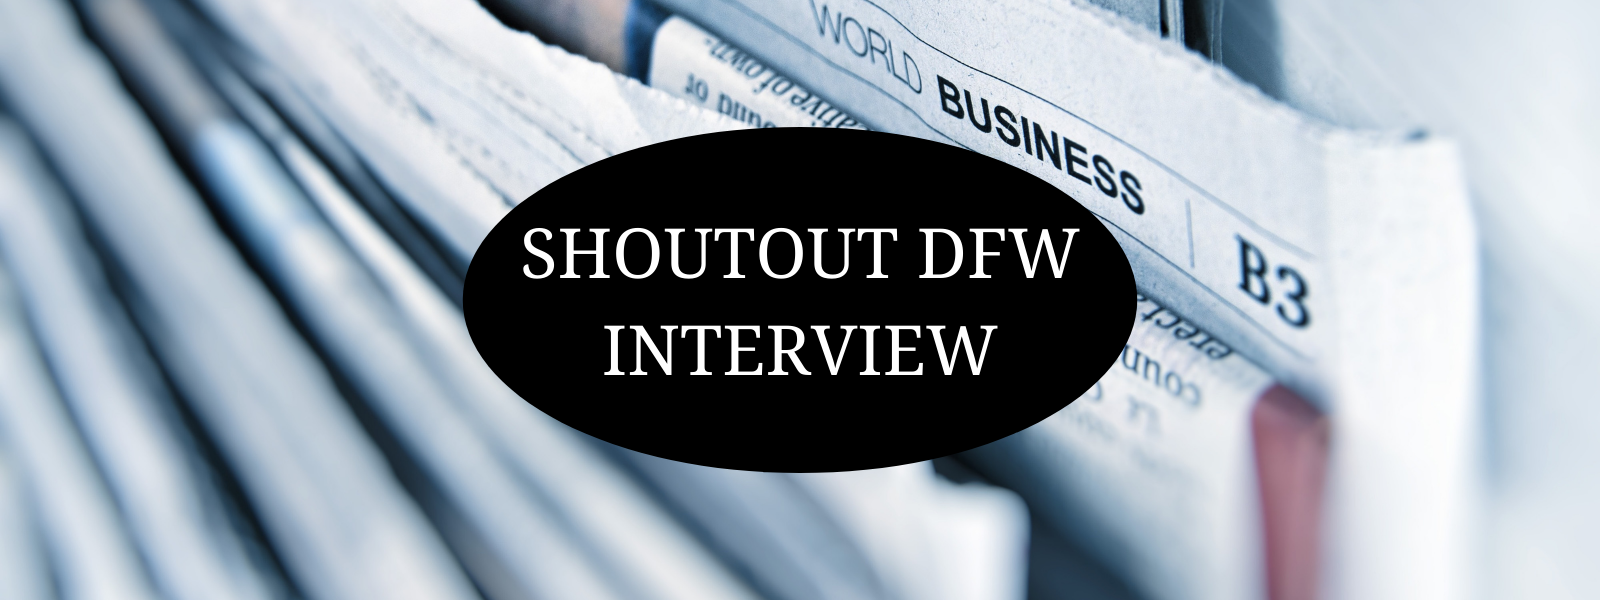 ResultsResourcing and Elizabeth Eiss interview by Shoutout DFW